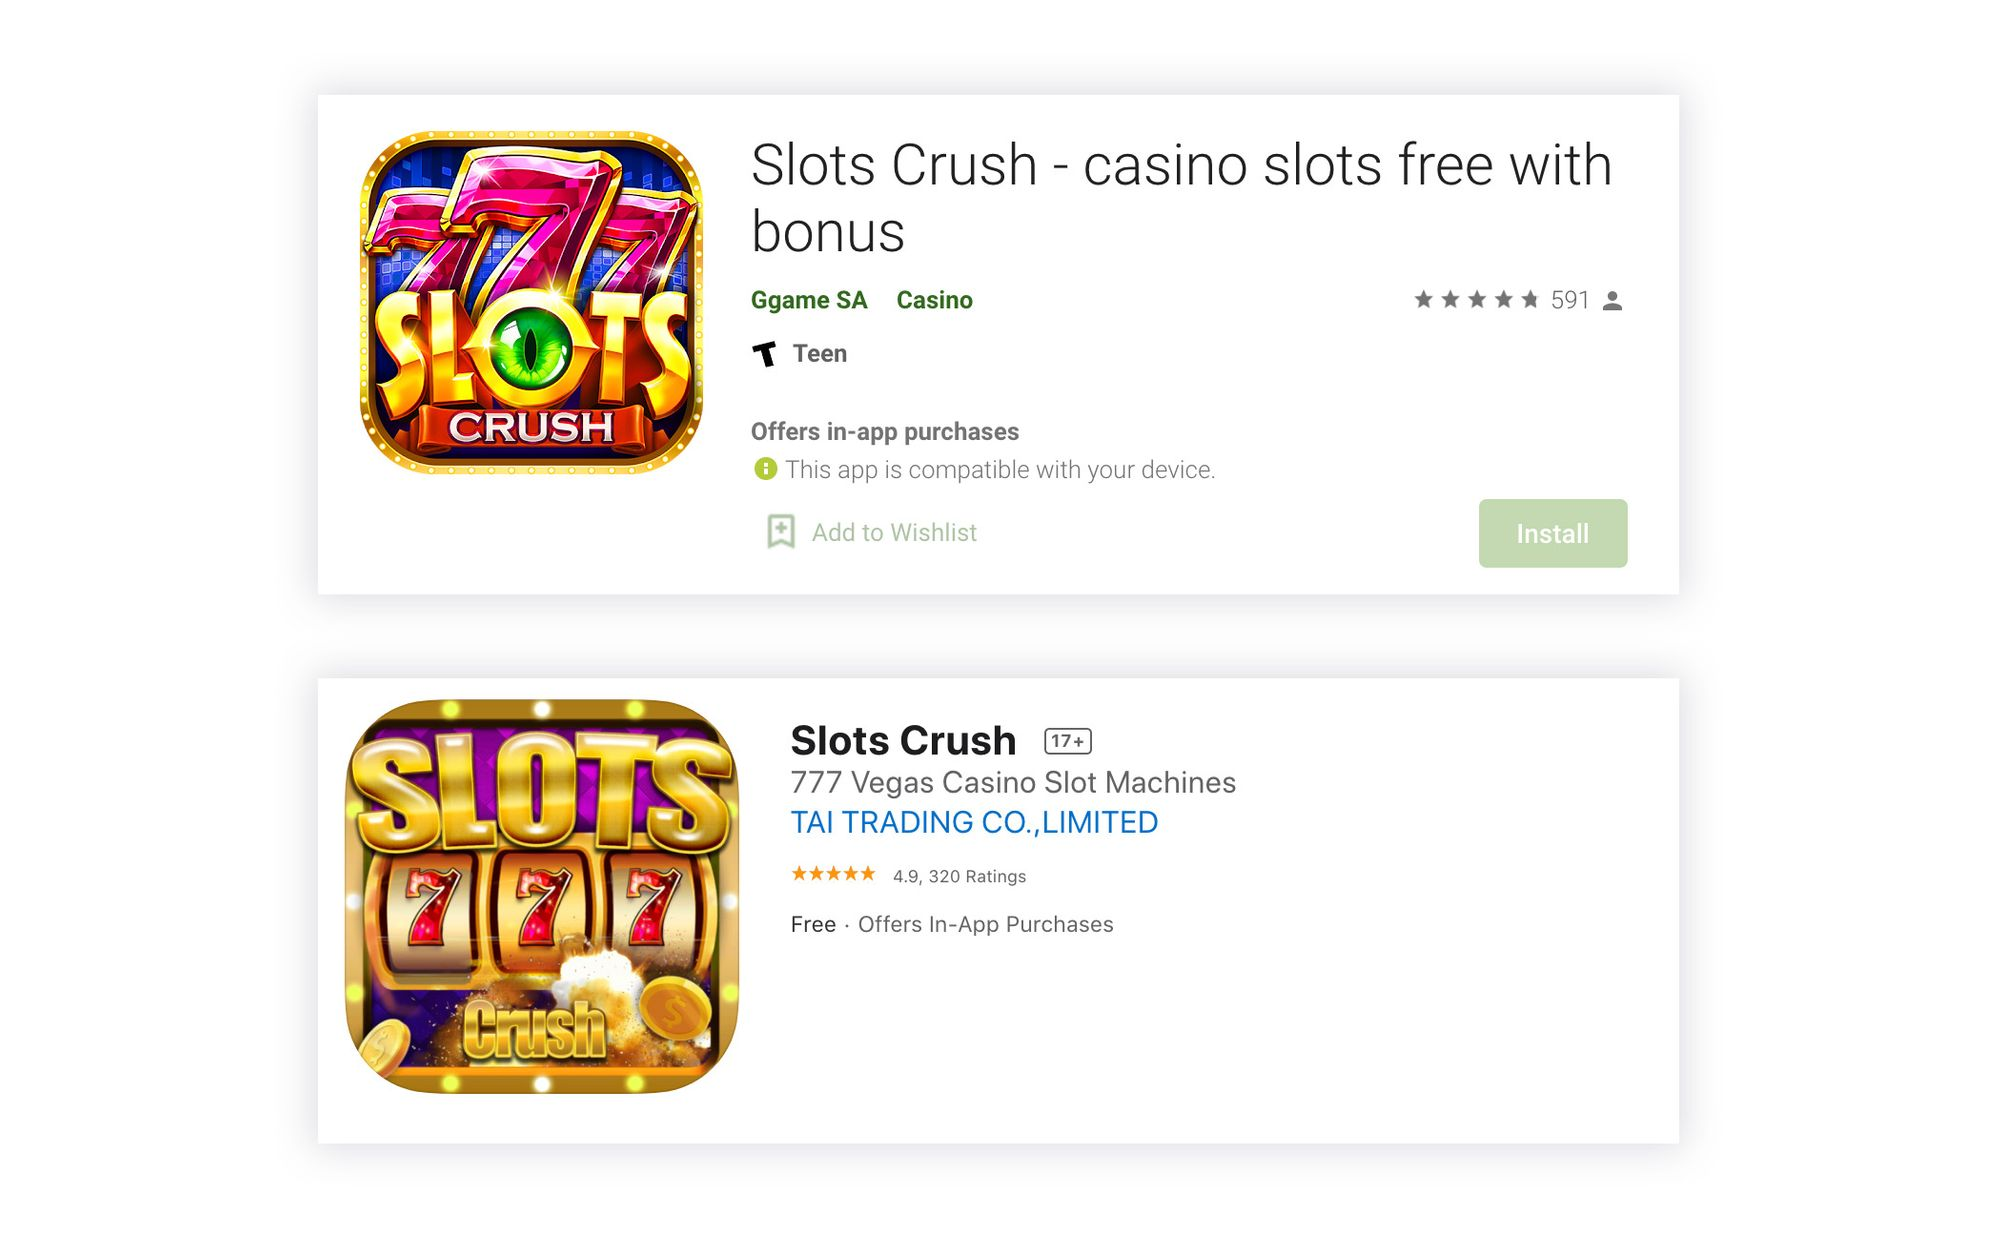 Google Play accepts keywords in the title, while on the App Store the title should be clear and straightaway